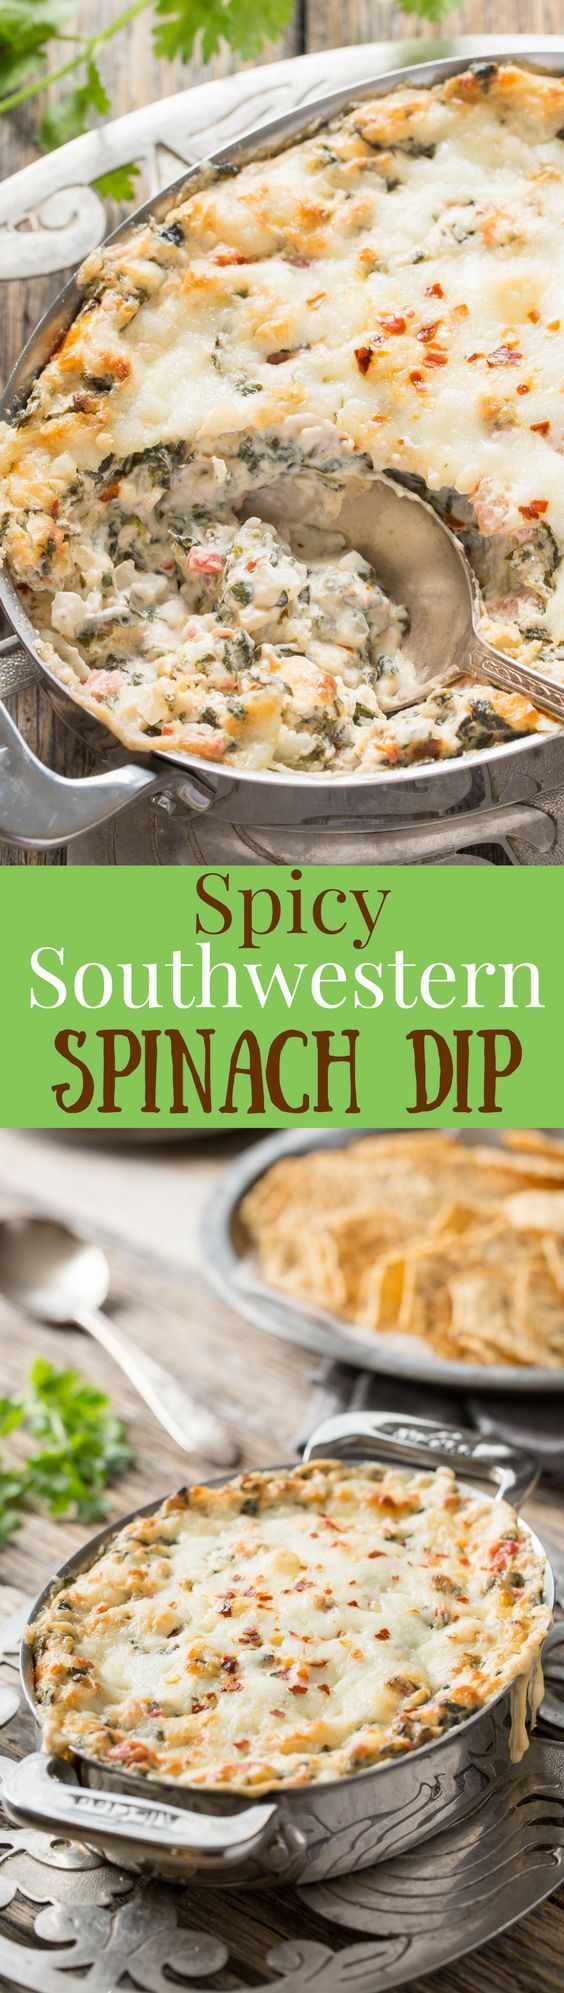 Spicy Southwestern Spinach Dip - a spicy warm spinach dip packed with flavor. Serve with bread, chips or crackers. Easily mixed up ahead of time then baked when ready to serve.  www.savingdessert.com